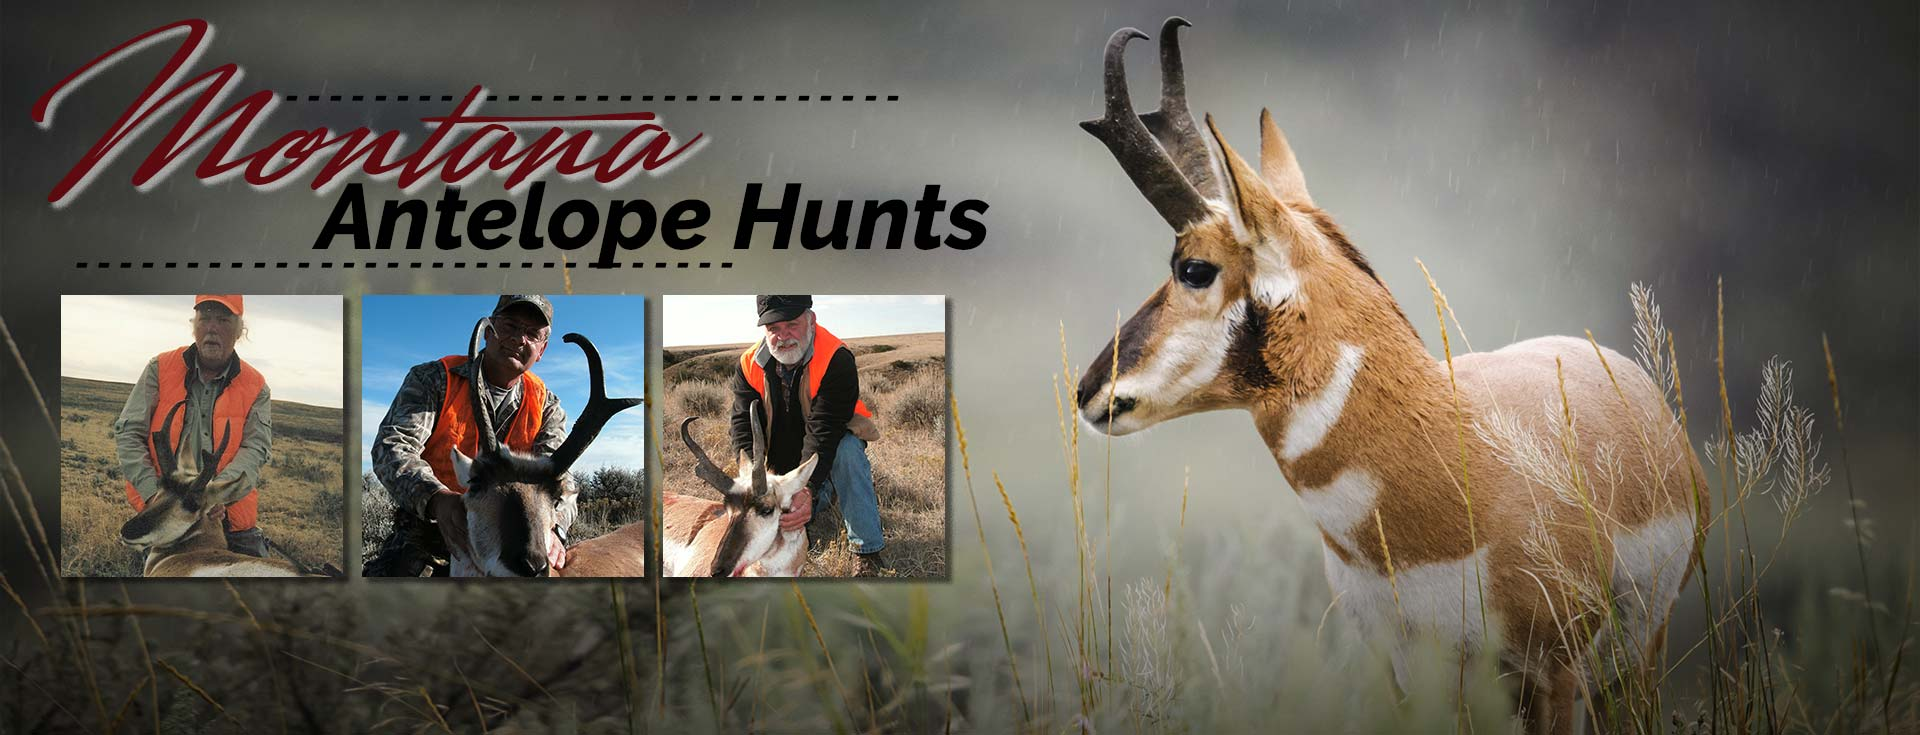 Montana Antelope |  Rifle Antelope Hunts